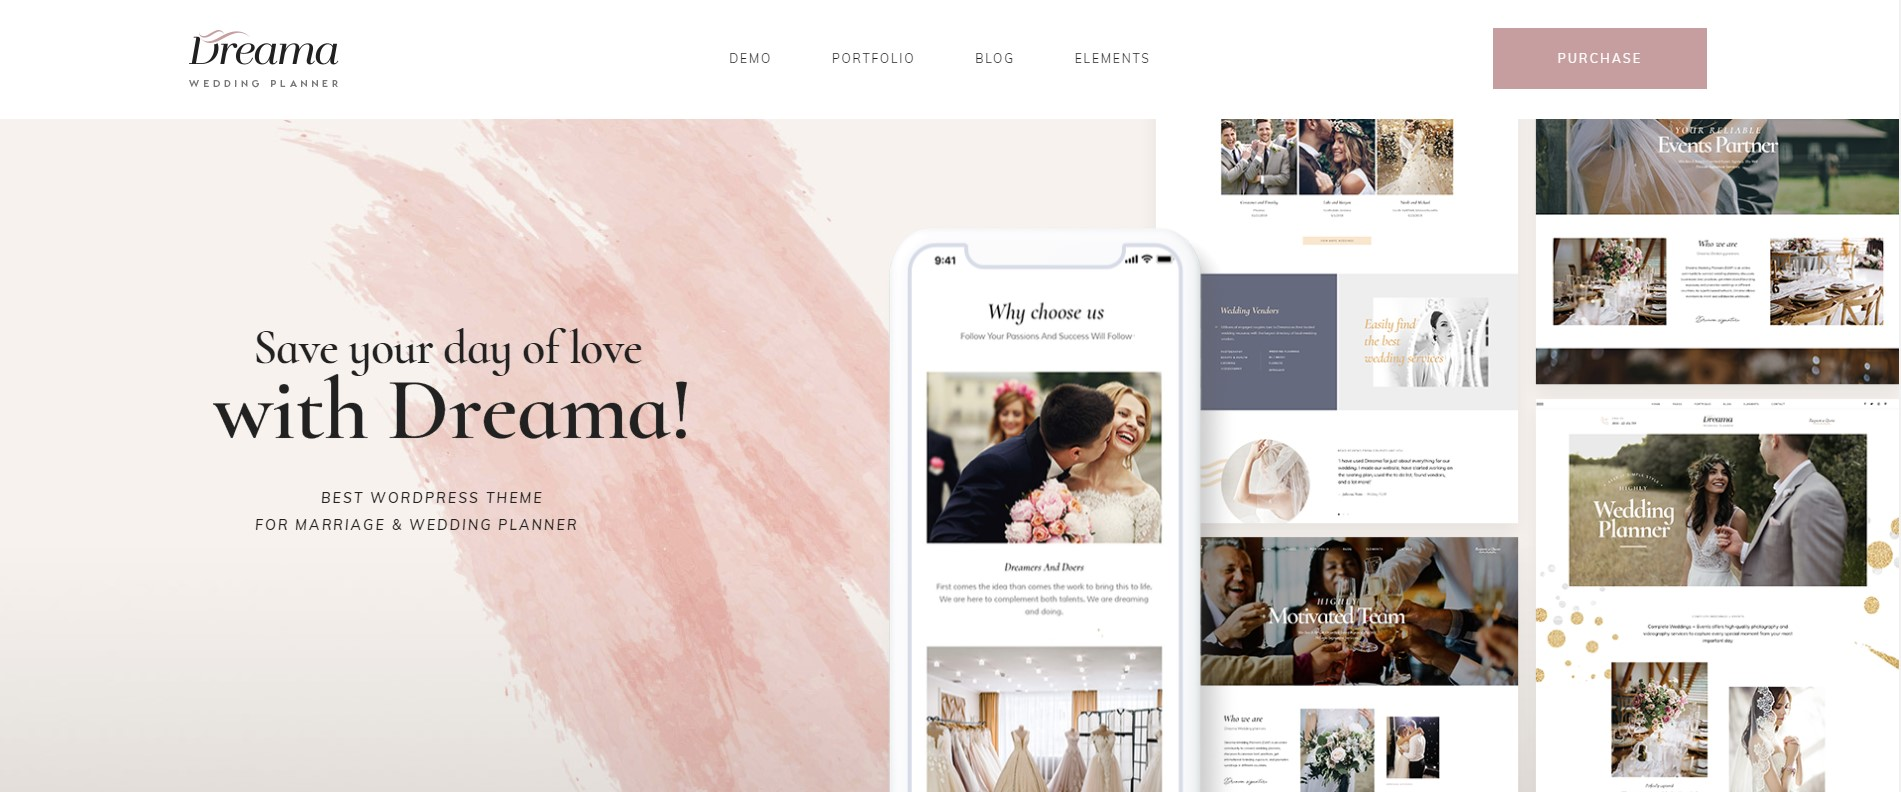 Dreama - Engagement & Wedding WordPress Theme